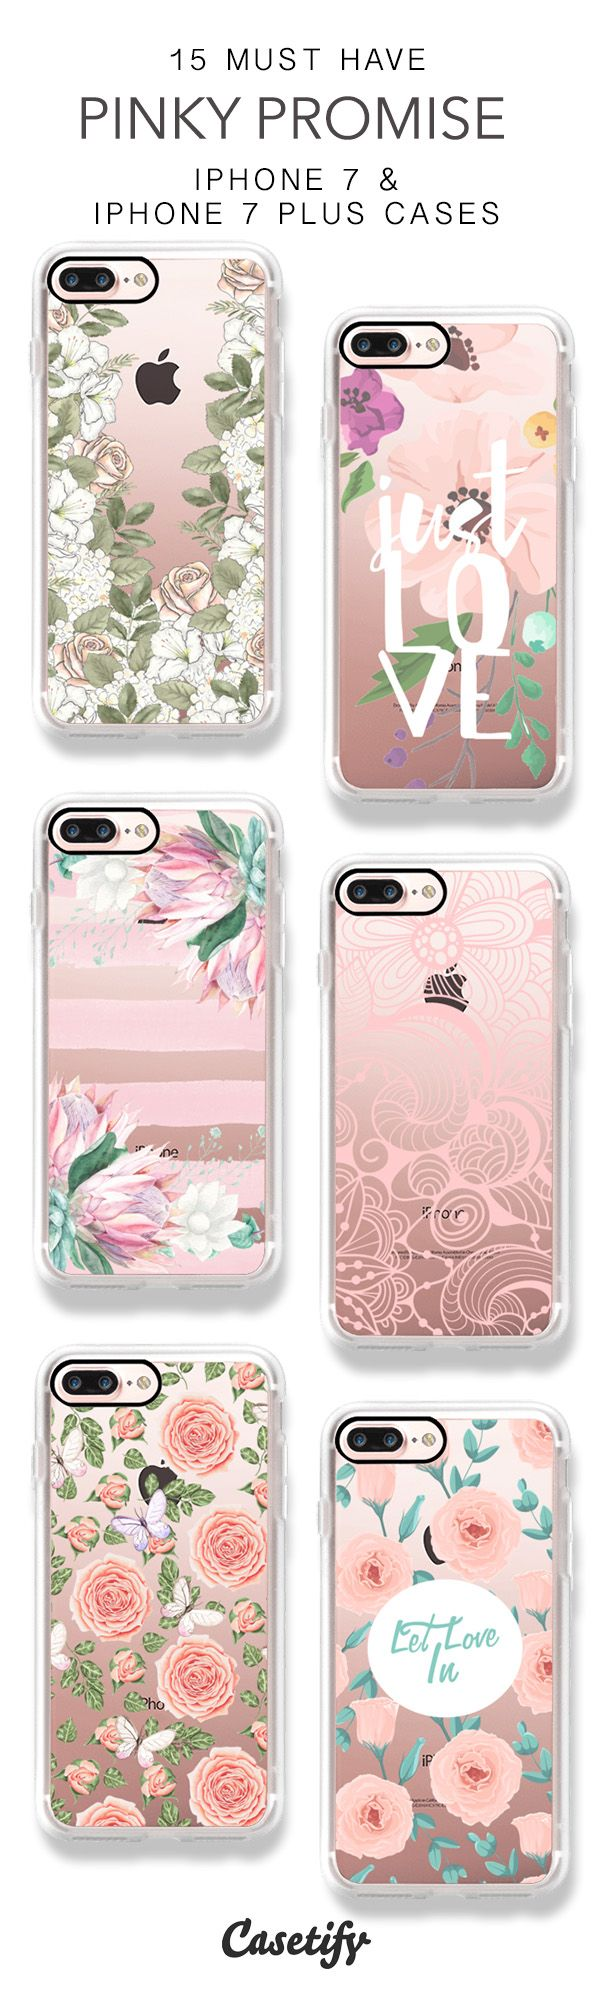 Sweet Pinky Promise. 15 Must Have Wedding and Floral iPhone 7 Cases and iPhone 7 Plus Cases here > https://www.casetify.com/artworks/PaL0YXsbTR